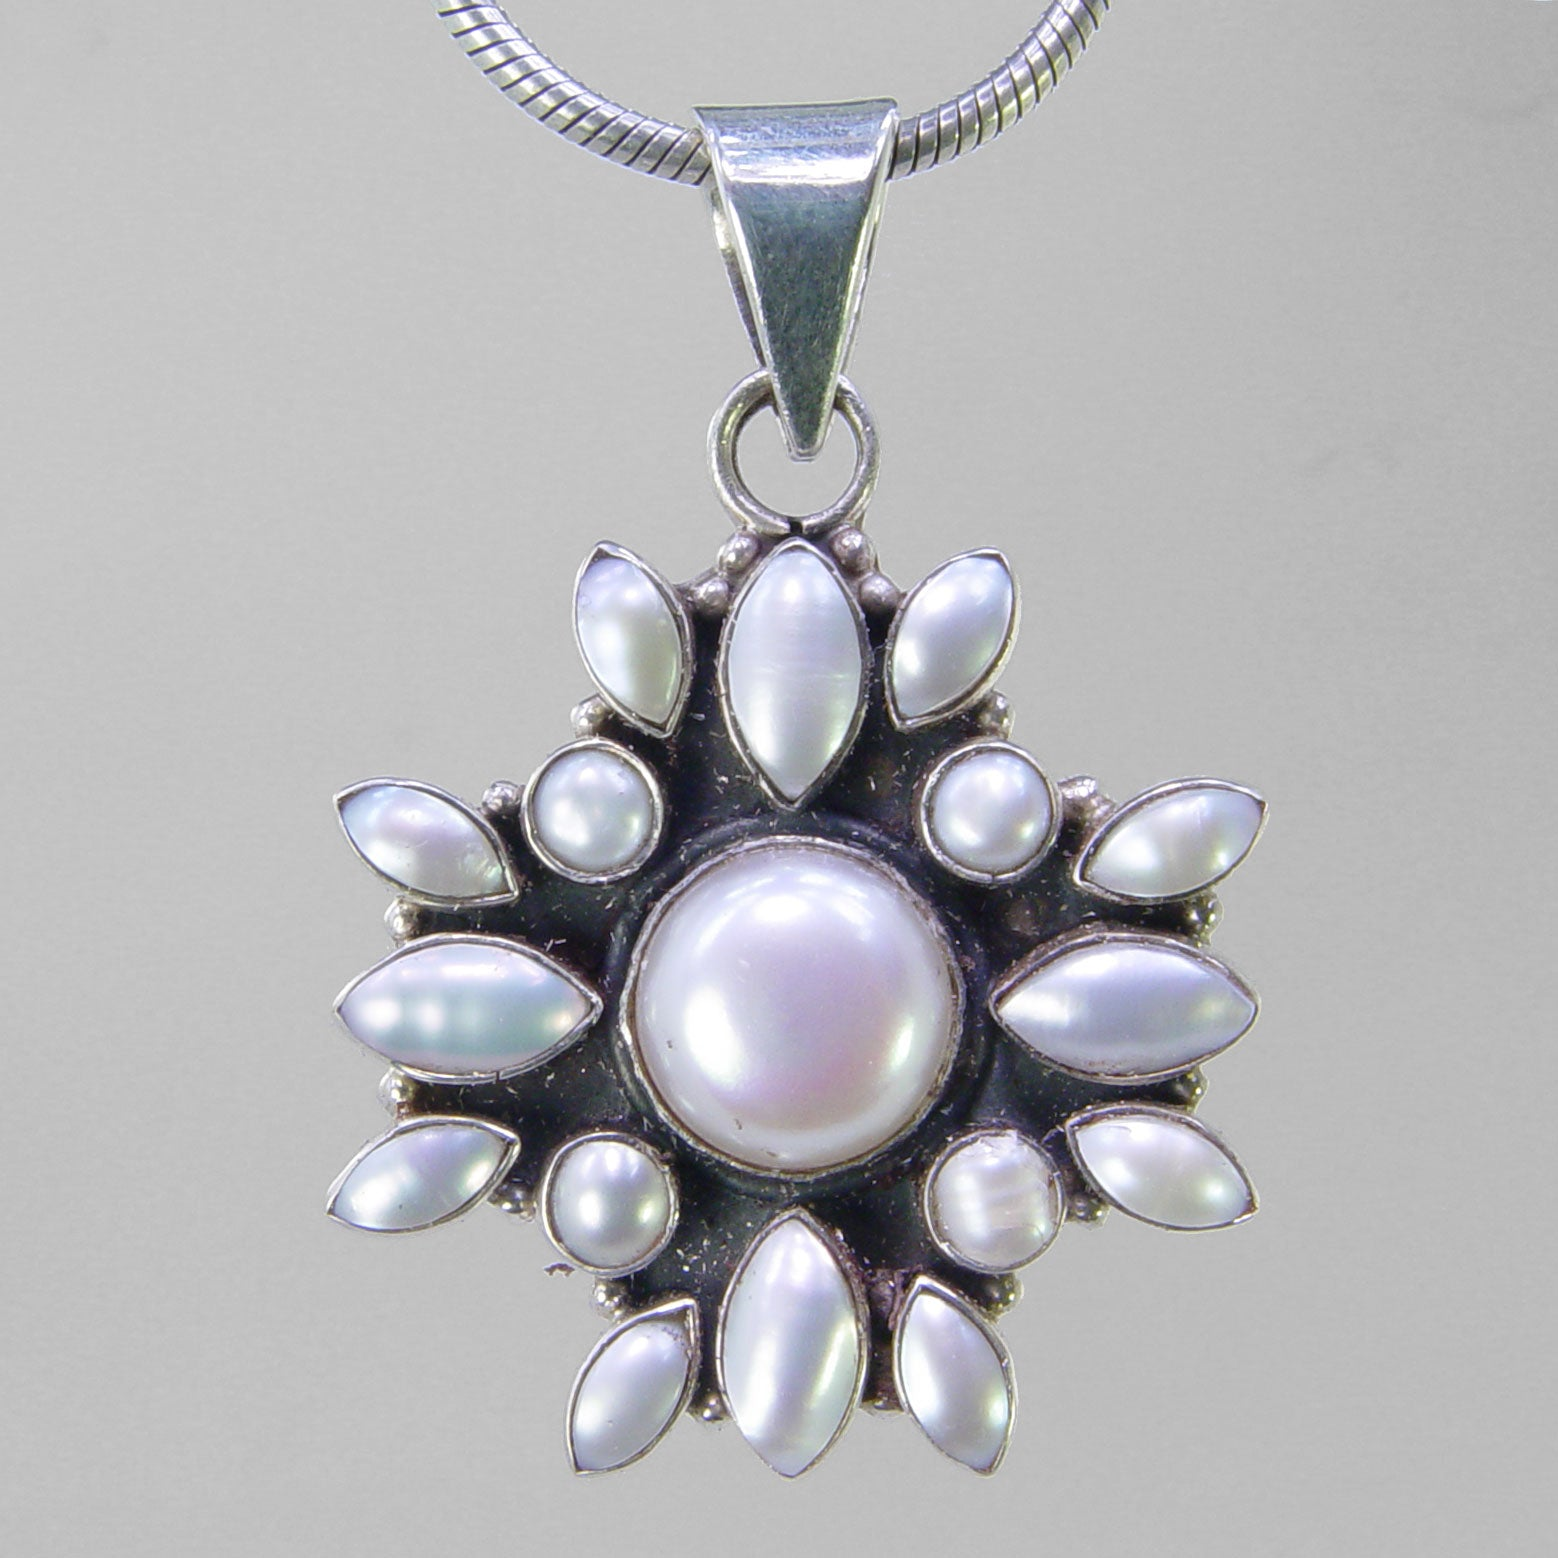 Pearl 6 ct Bezel Set With 16 Small Pearls Sterling Silver Pendant